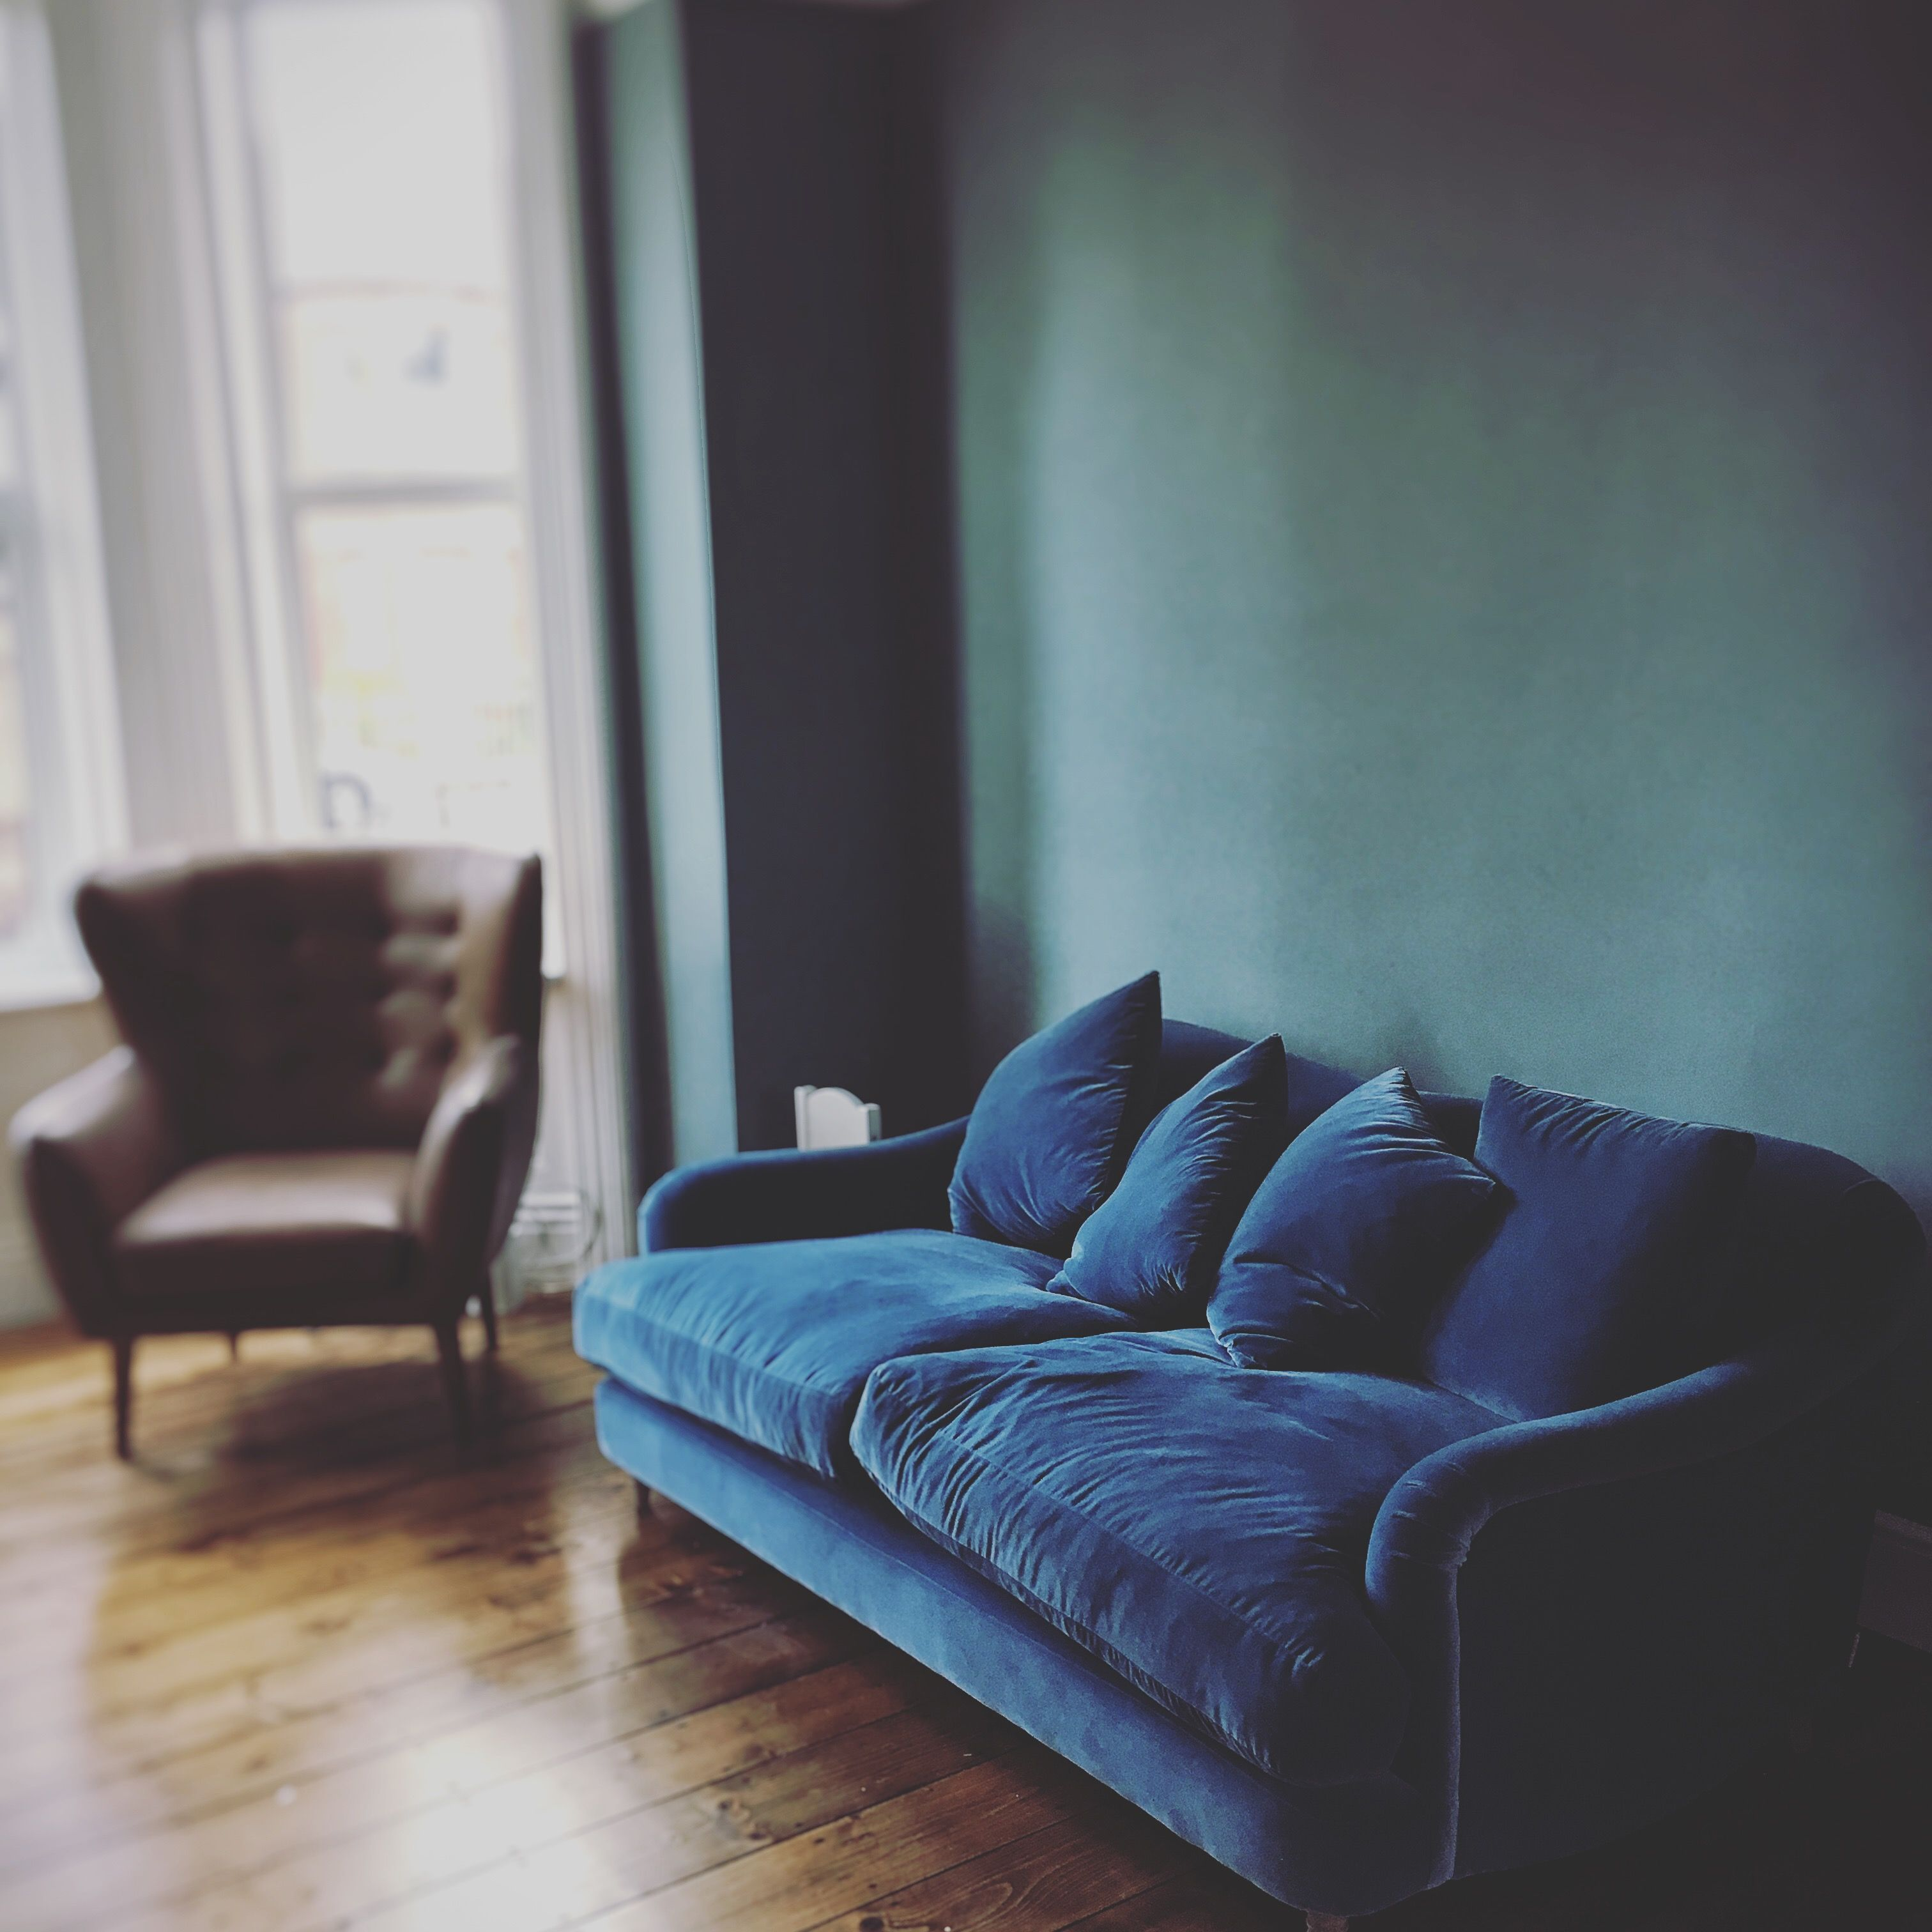 Made Com Chair And Loaf Velvet Sofa With Oval Room Blue Farrow